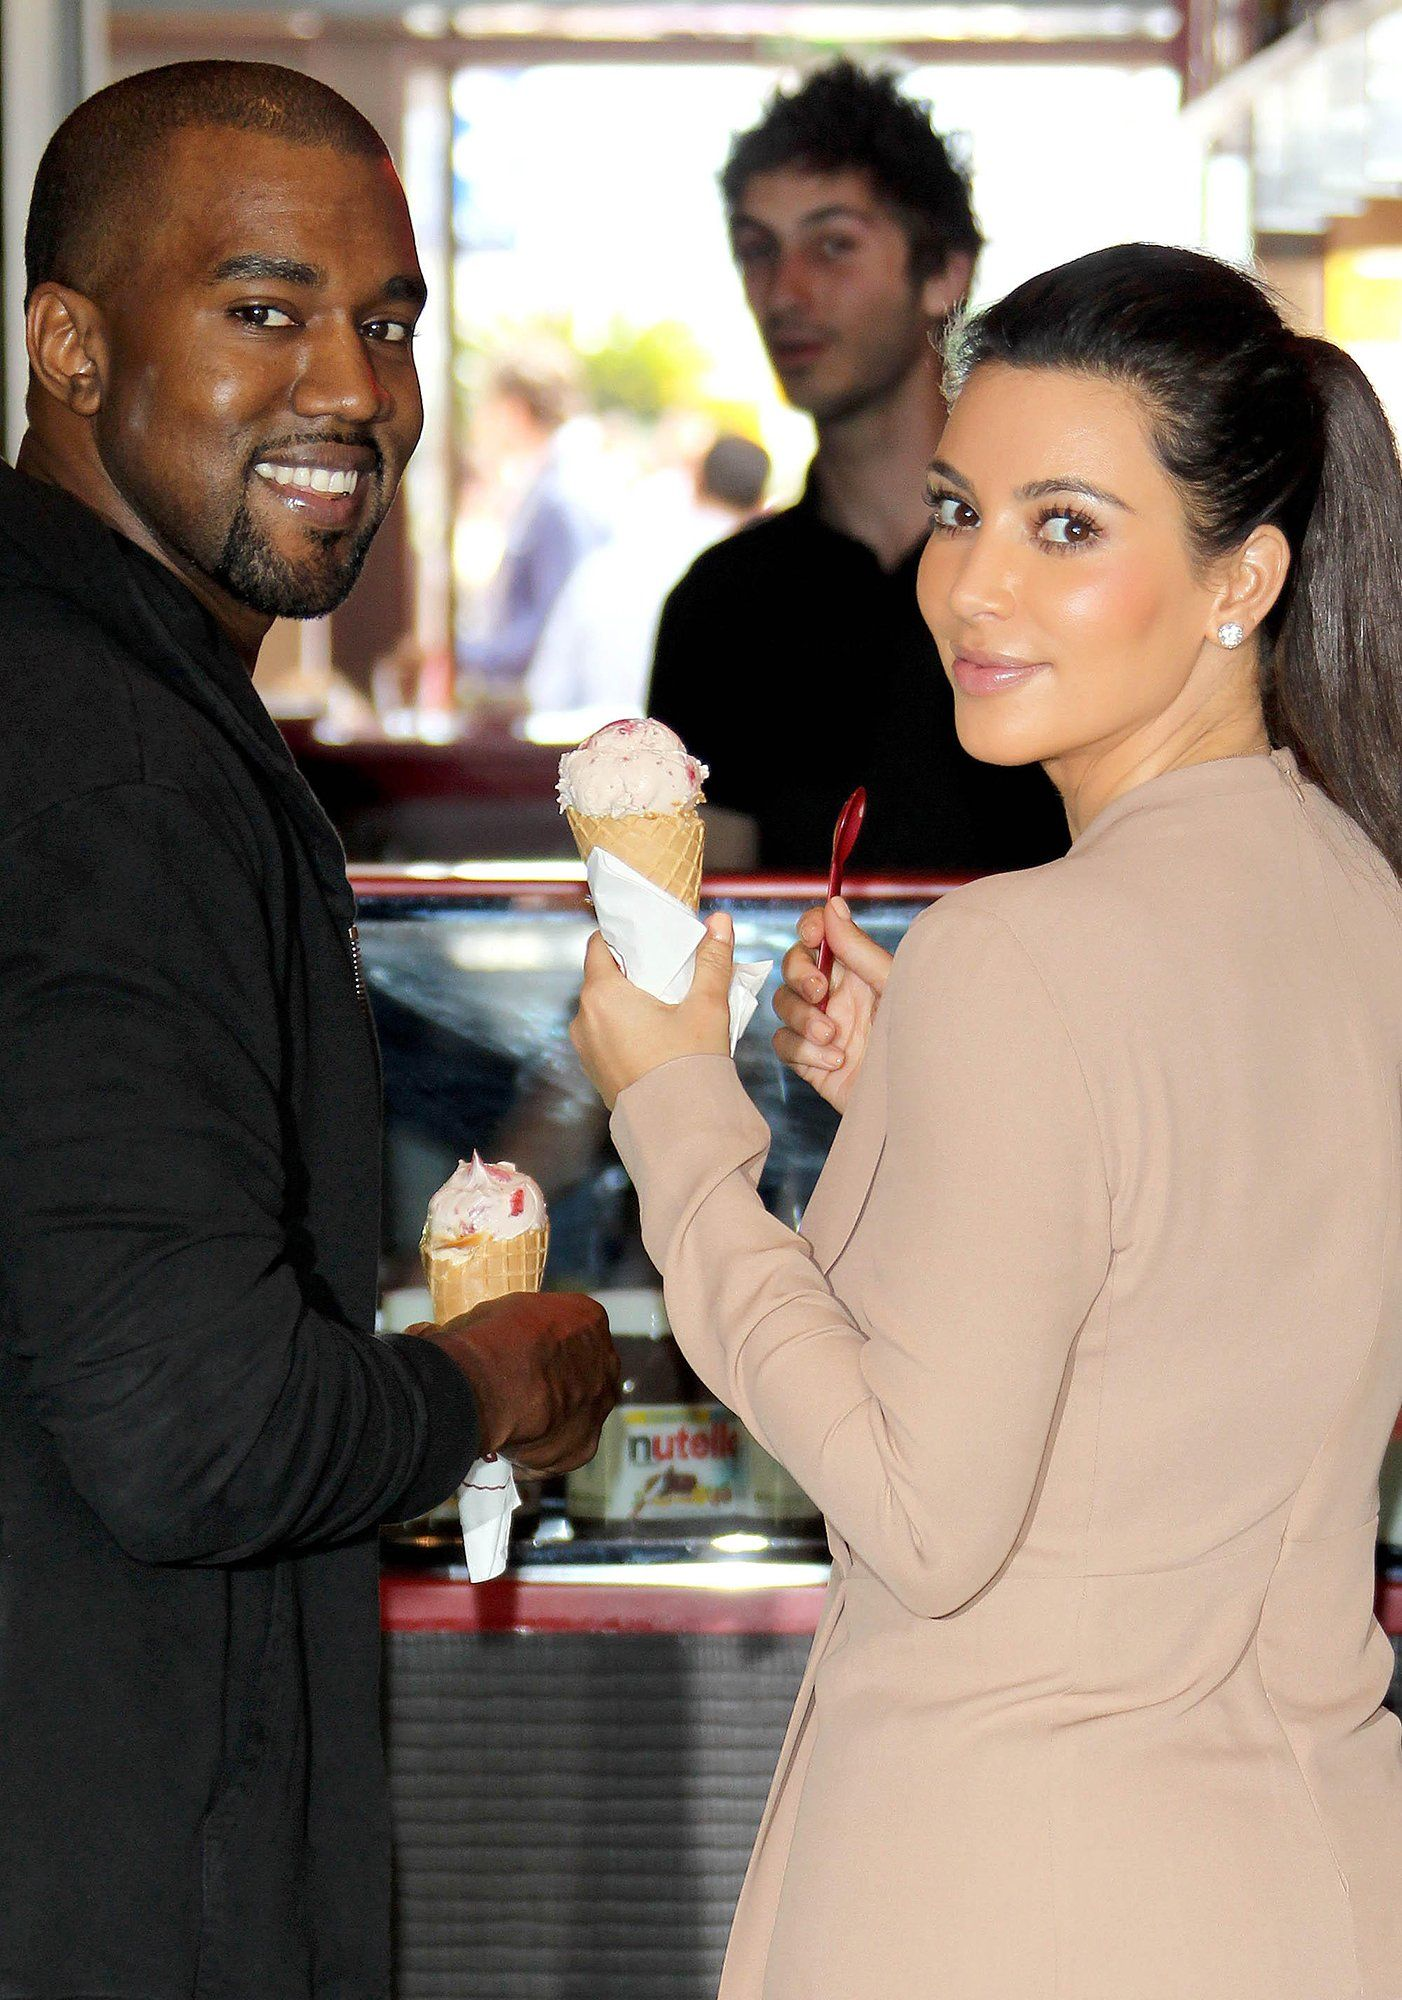 Even celebrities scream for ice cream: Kanye West and Kim Kardashian West, 2012.